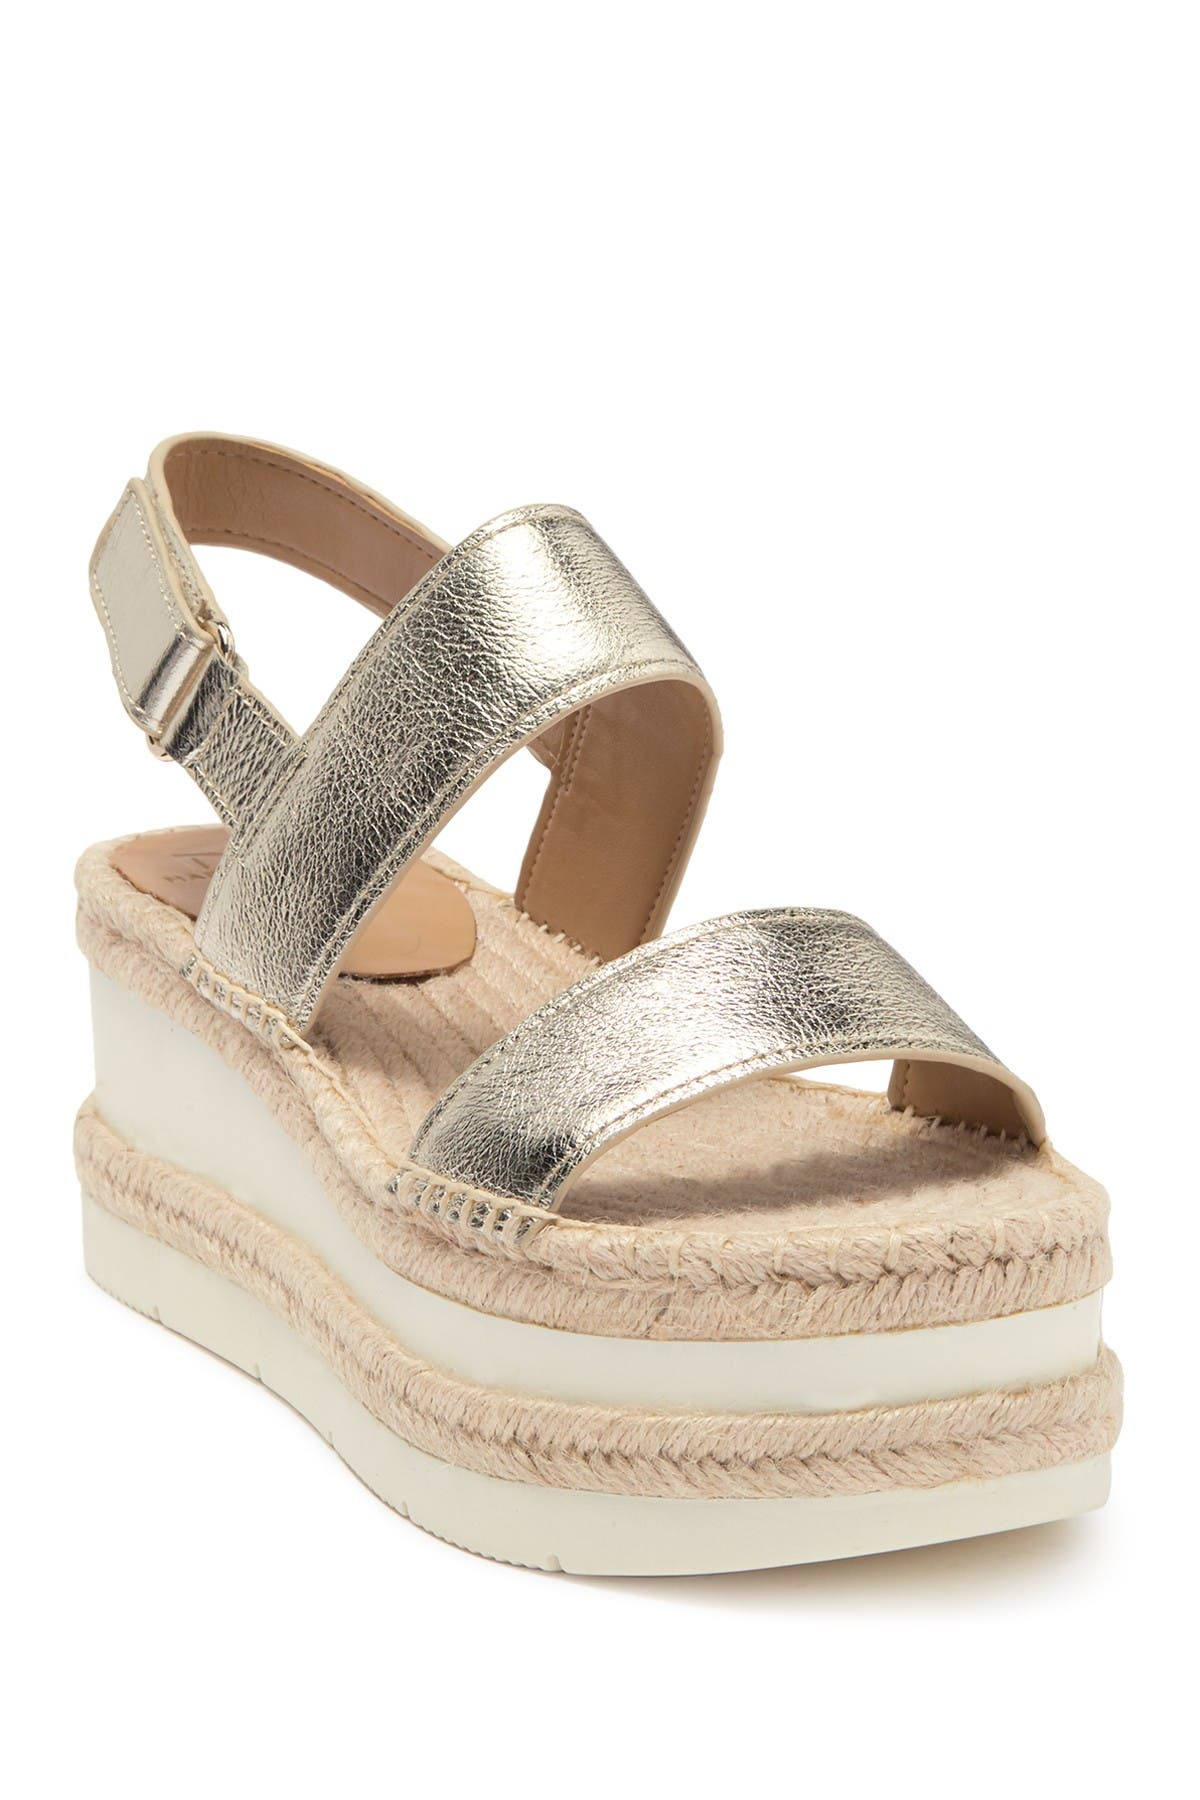 Image of Marc Fisher Gallia Espadrille Sandal